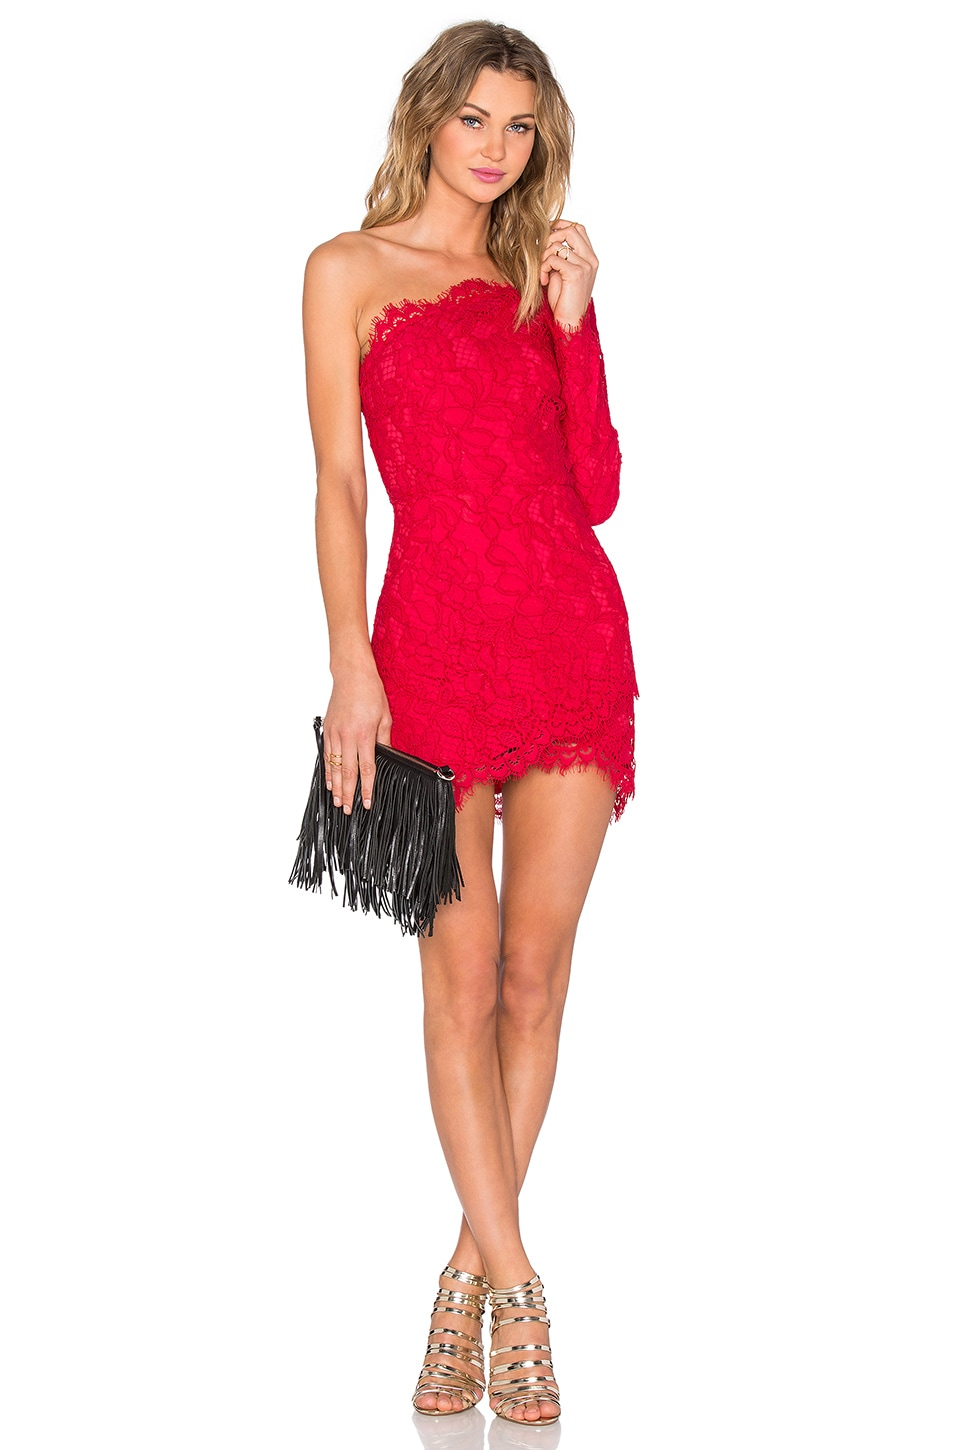 X by NBD Mia Dress in Red